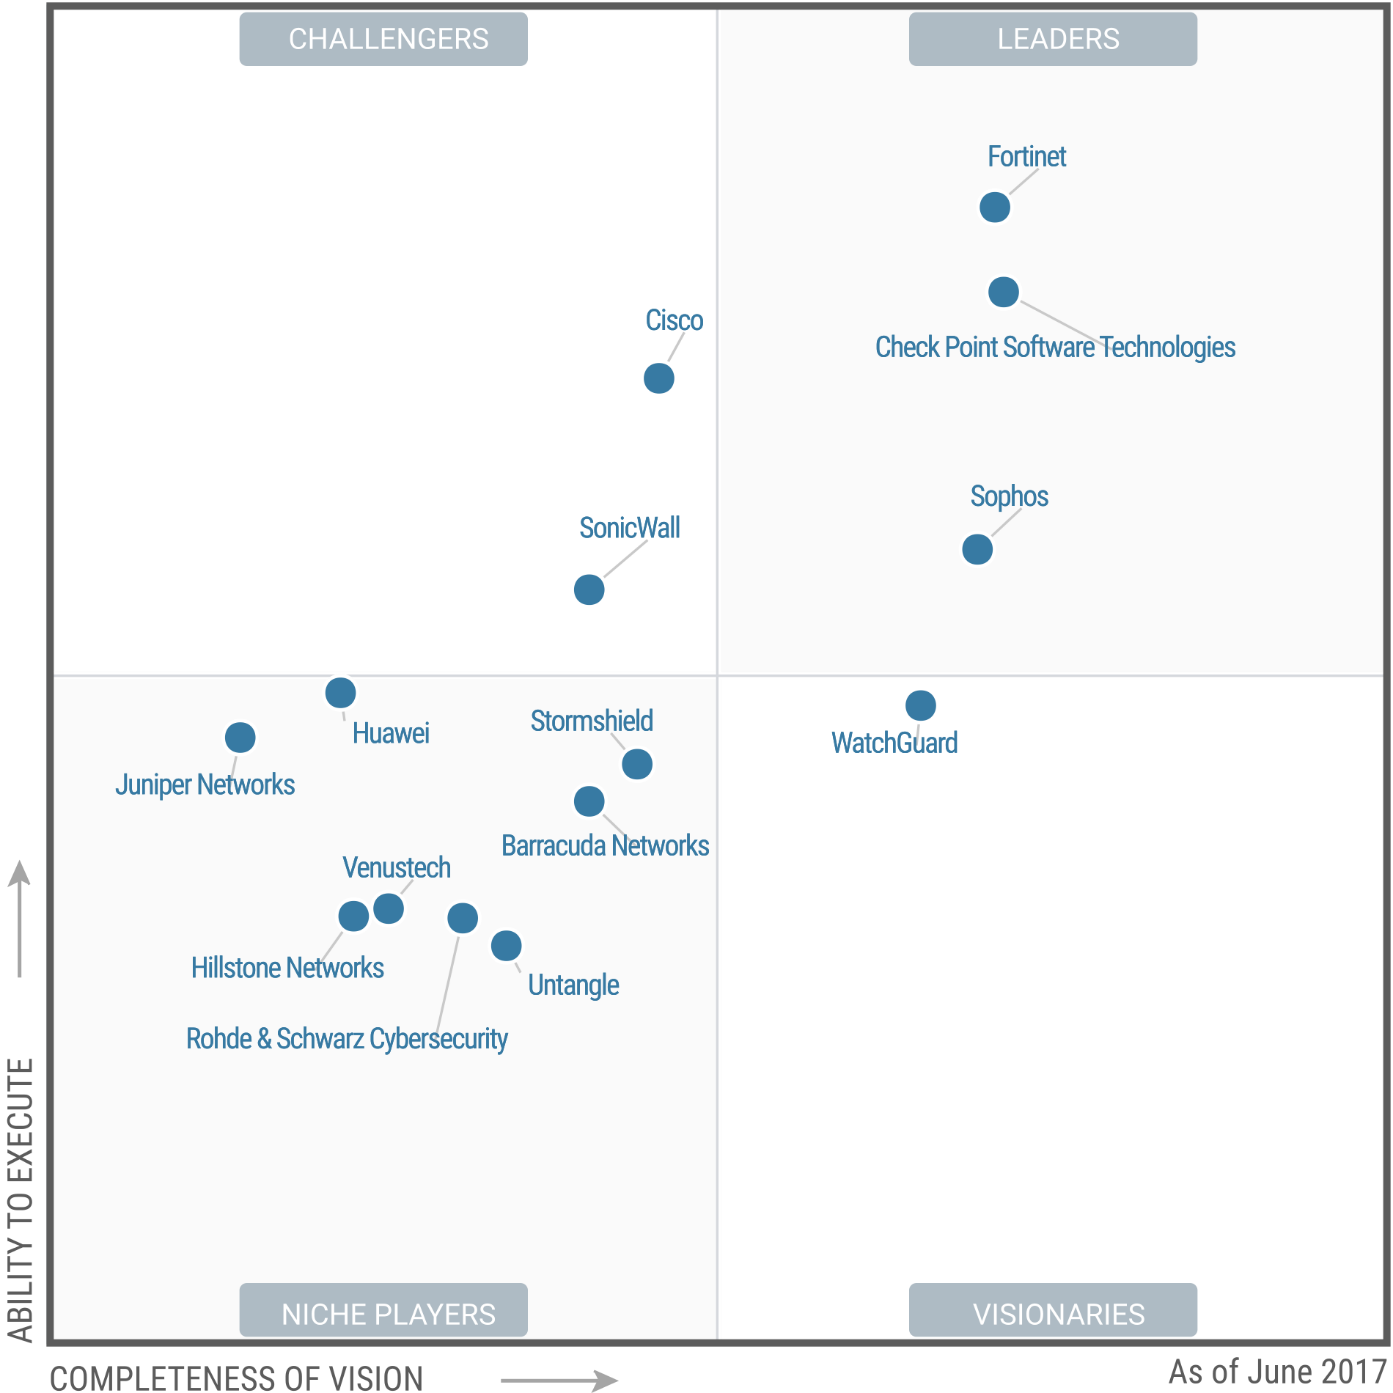 Magic Quadrant for Unified Threat Management 2017 (G00316047)